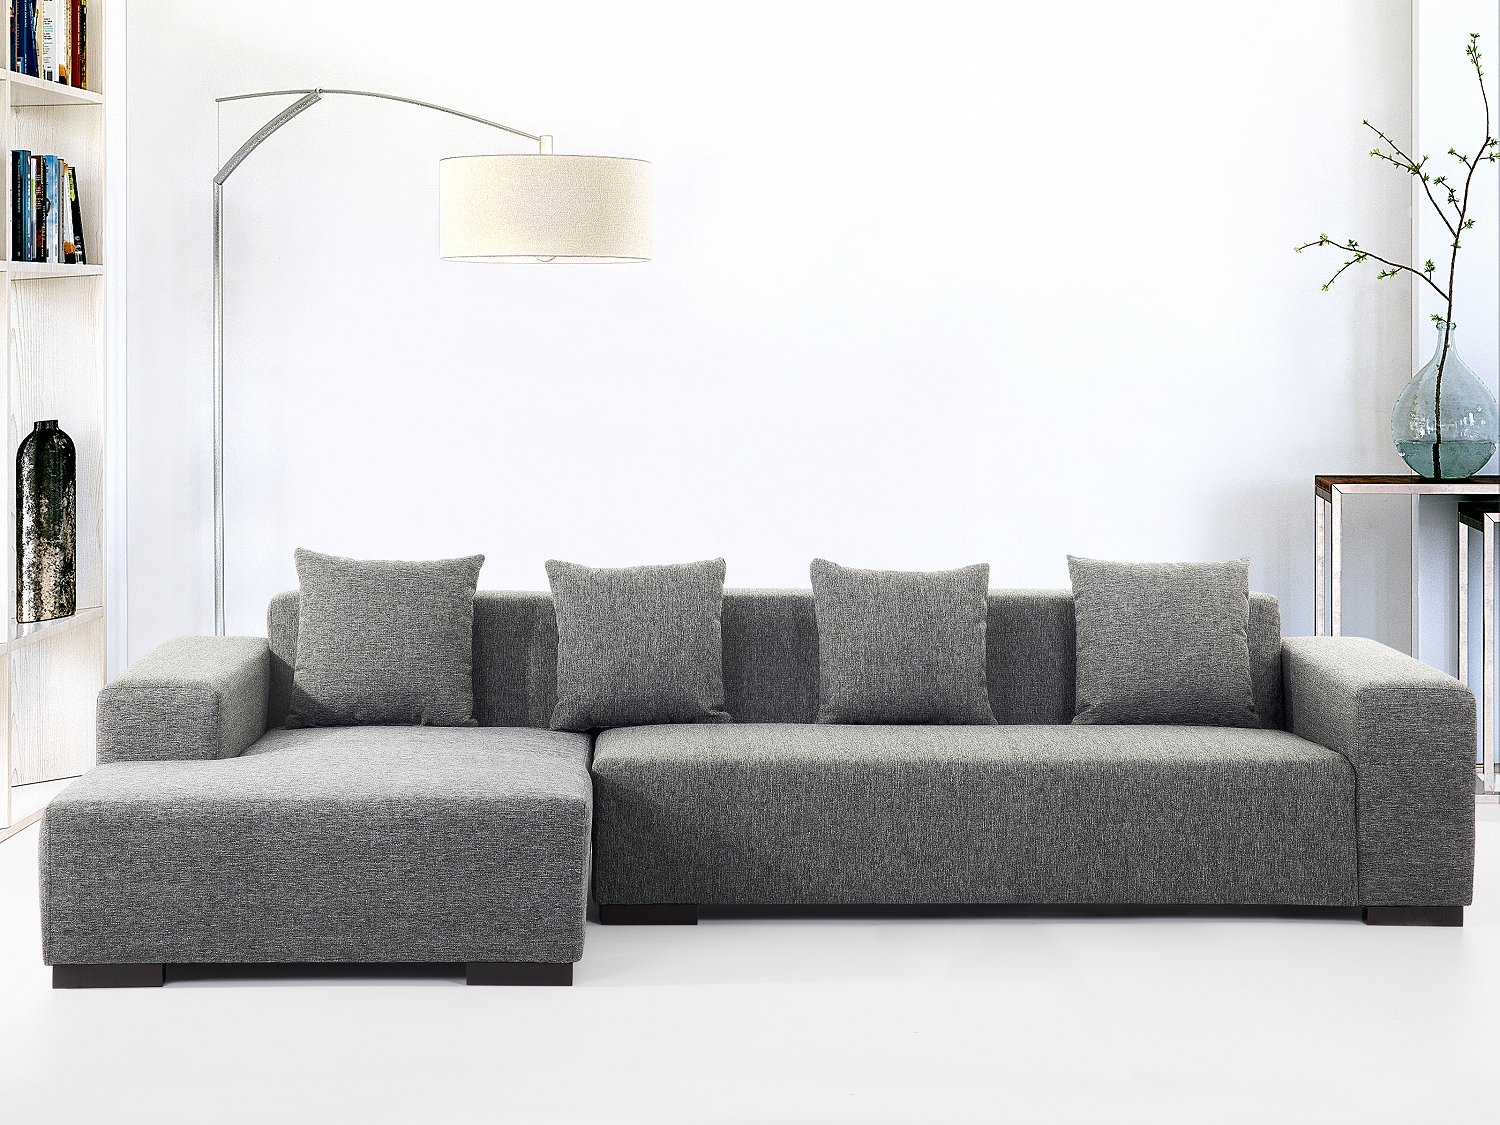 Sofa Lounge Corner Sofa 5 Seater Upholstered Living Room Right Dark Grey